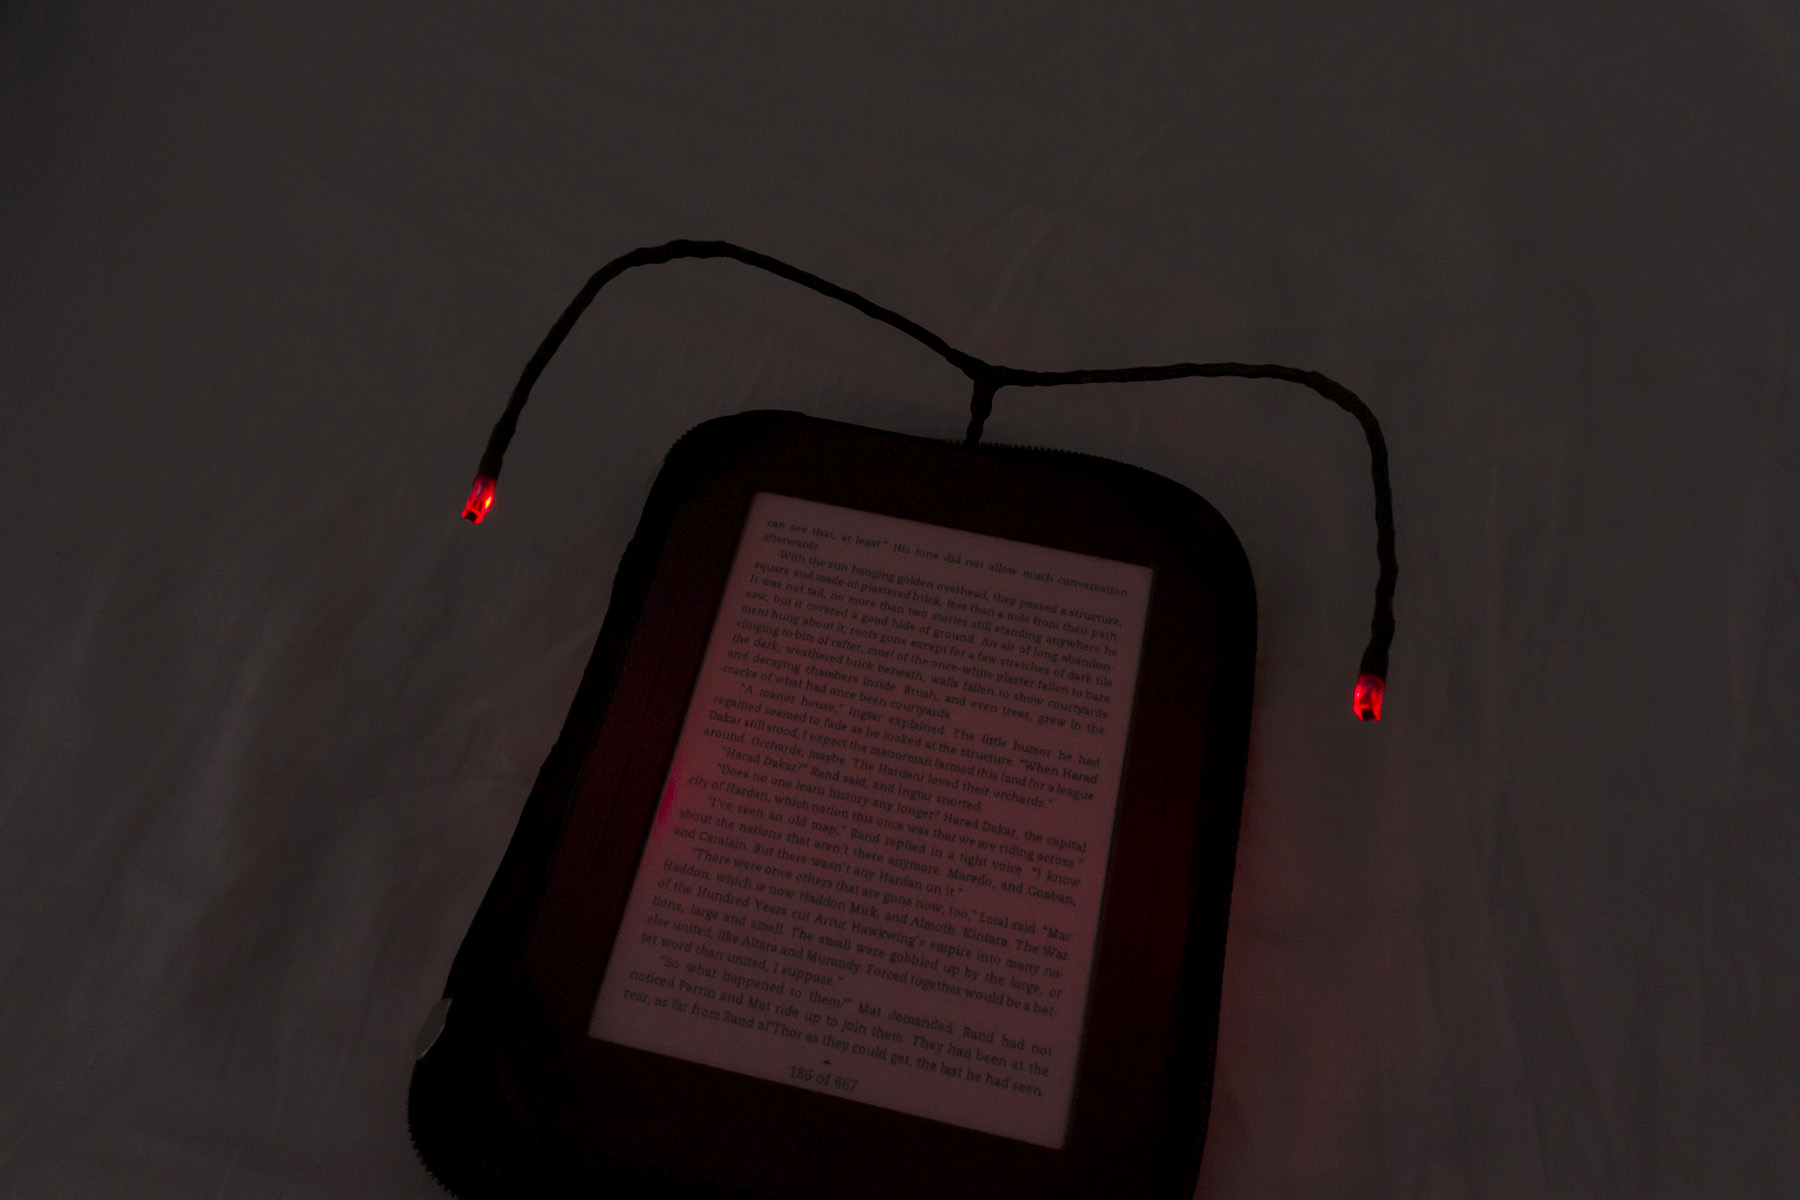 low-current lamp red led diode book light e-book upgrade handmade